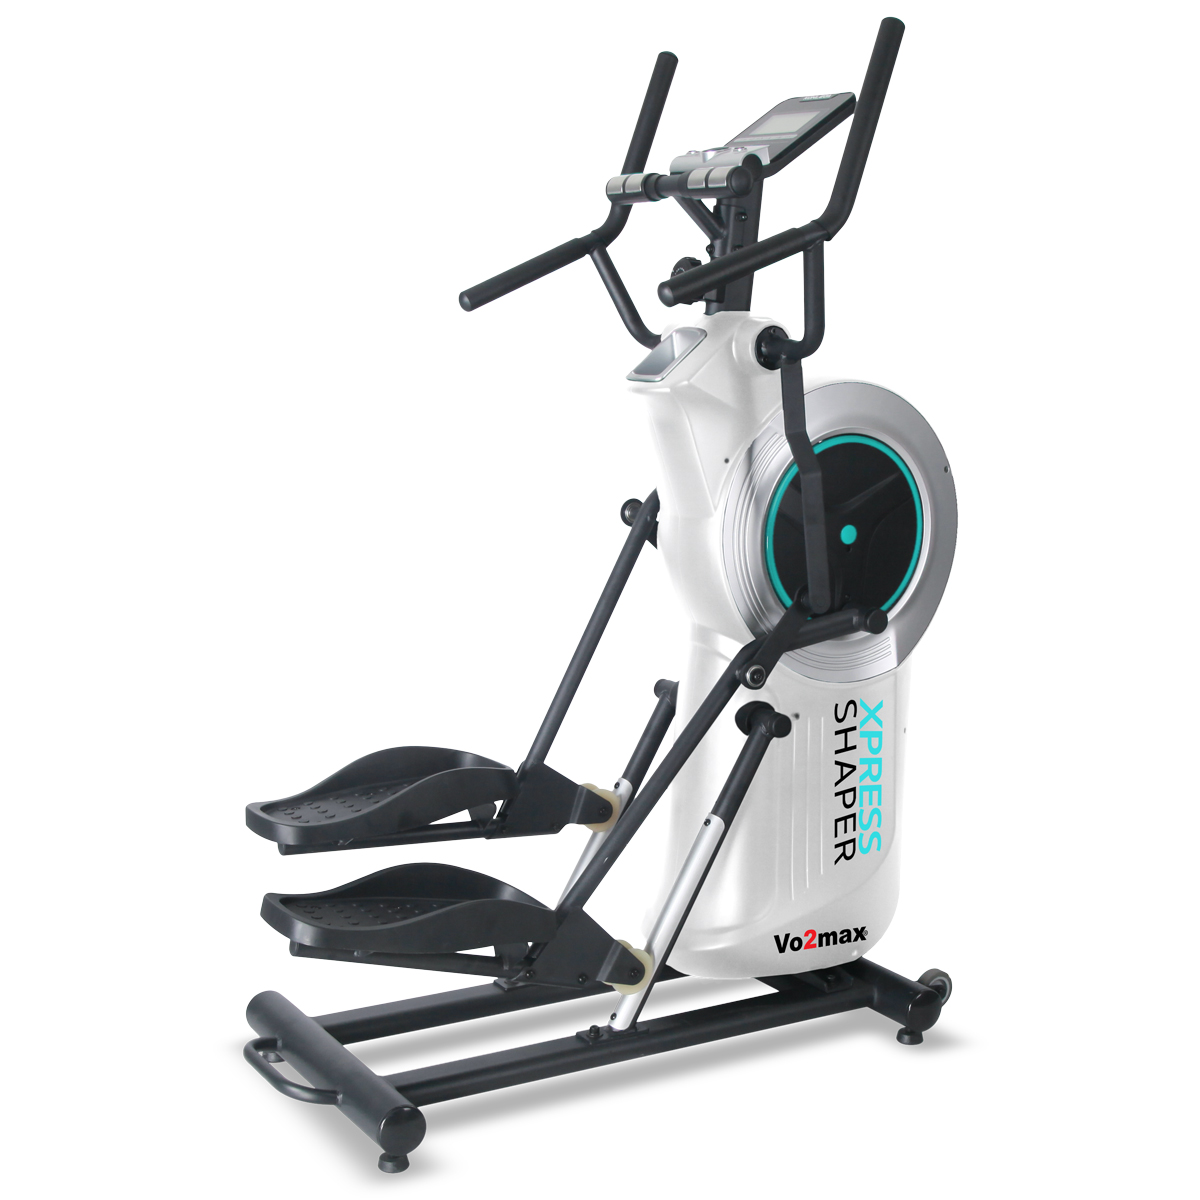 XPRESS SHAPER Vo2max trainer Vo2max by Renouf Fitness